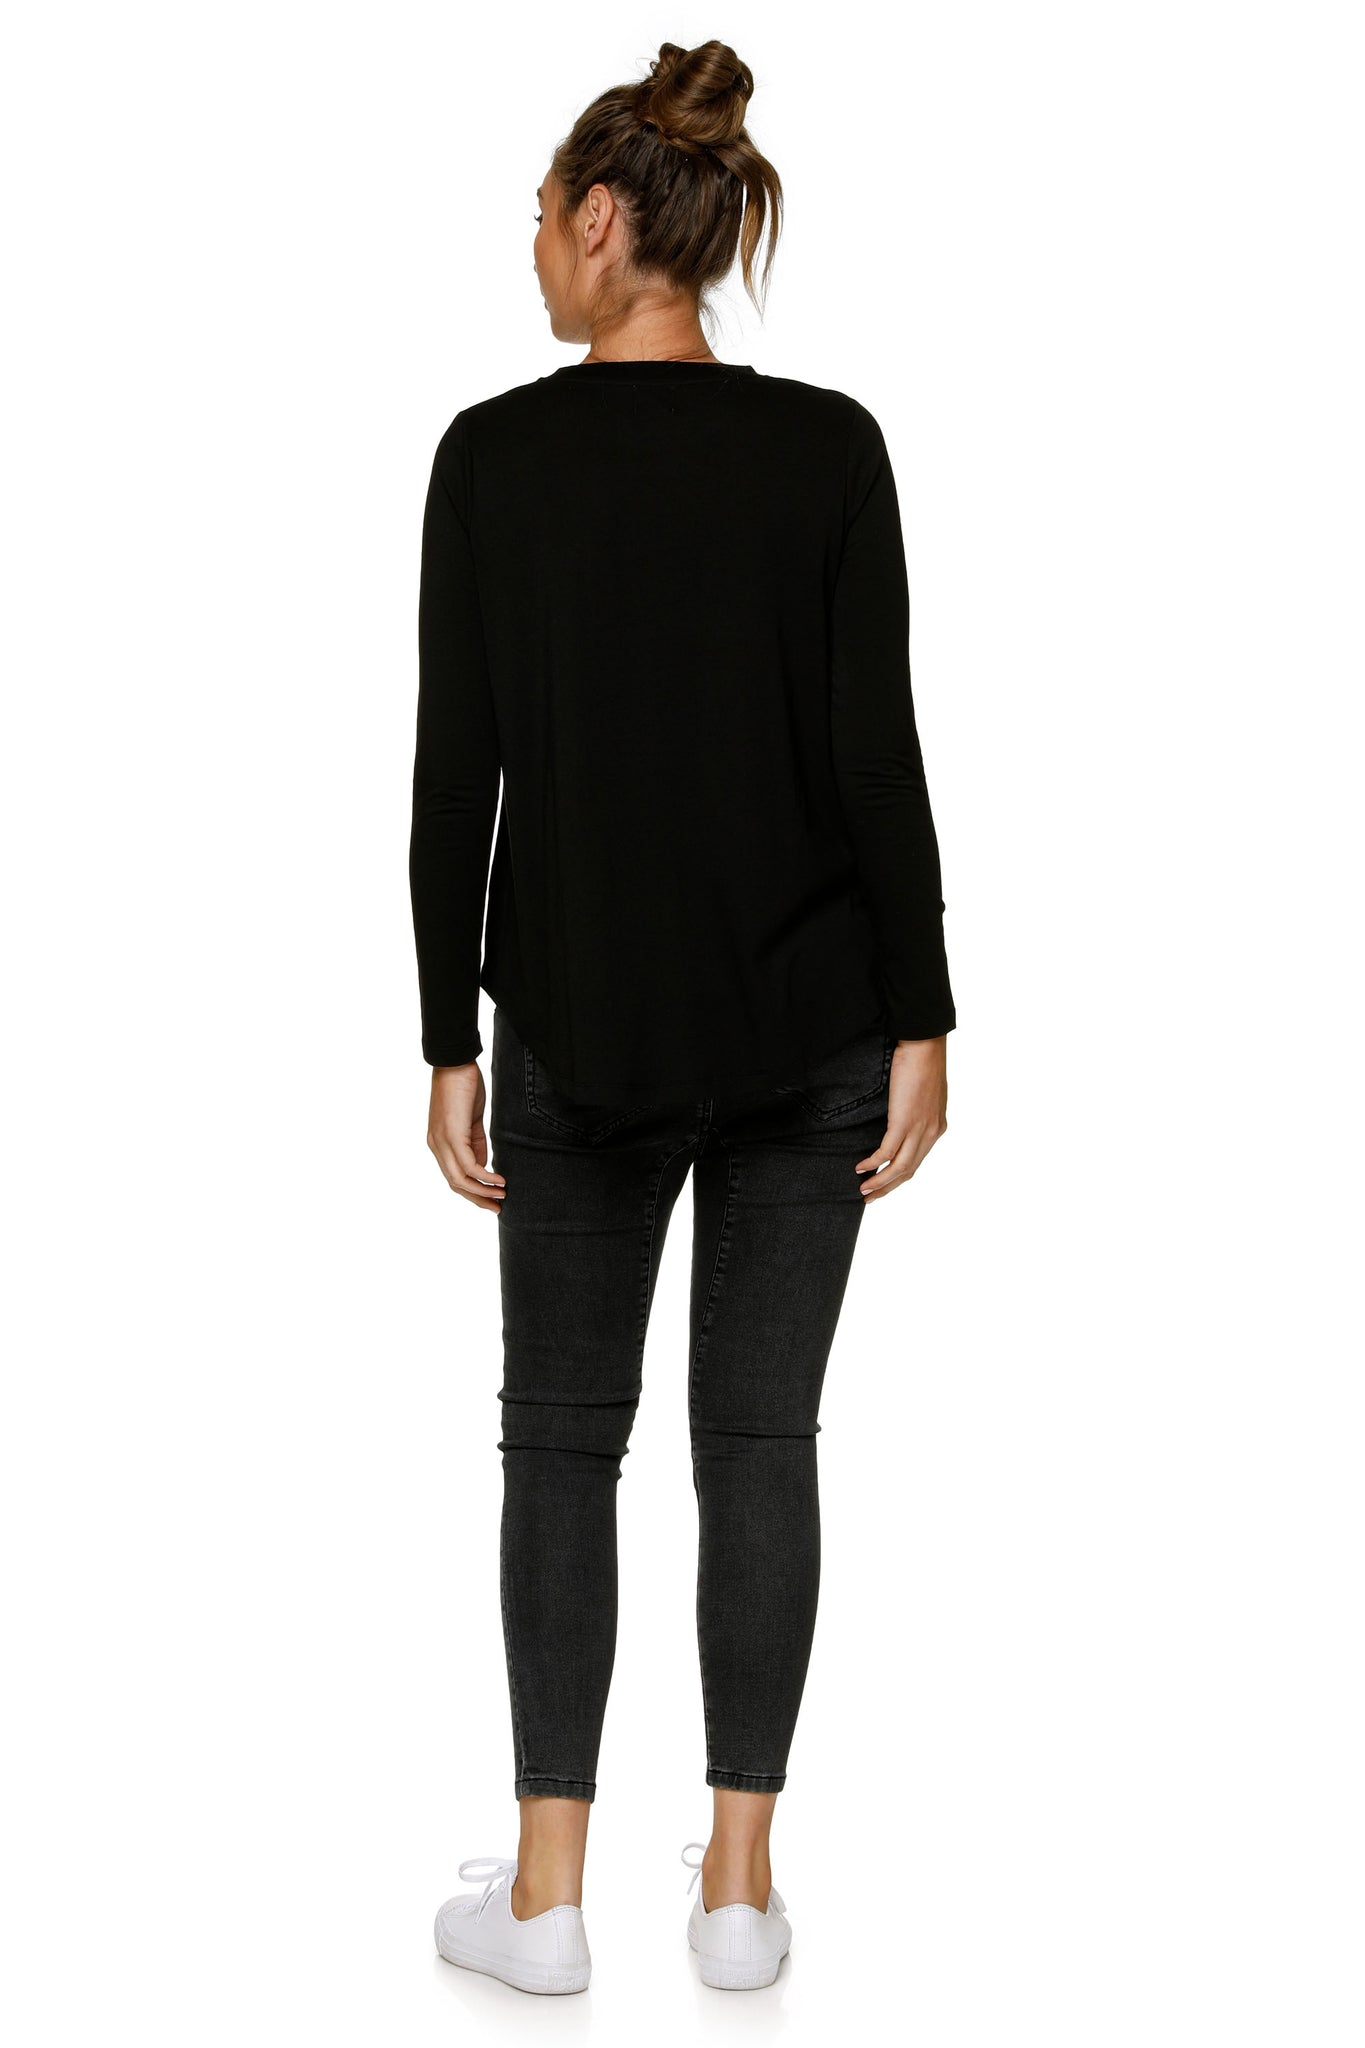 Maternity Long Sleeve Top - Black 10